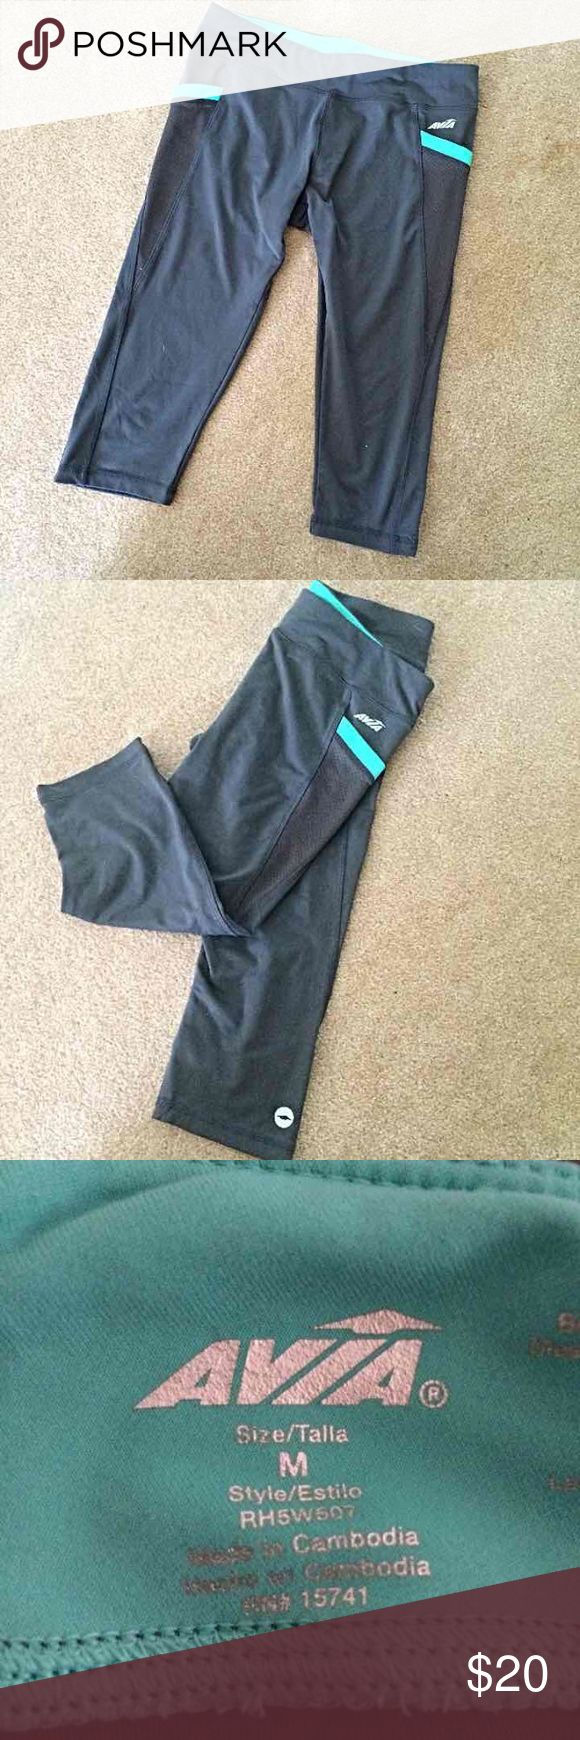 Avia Cropped Athletic Leggings Worn once! Like new! Amazing leggings but don't fit me right. Perfect for working out, running or yoga!   Tags: athlete work out gym yoga pants aqua blue grey athletic tight Avia Pants Leggings